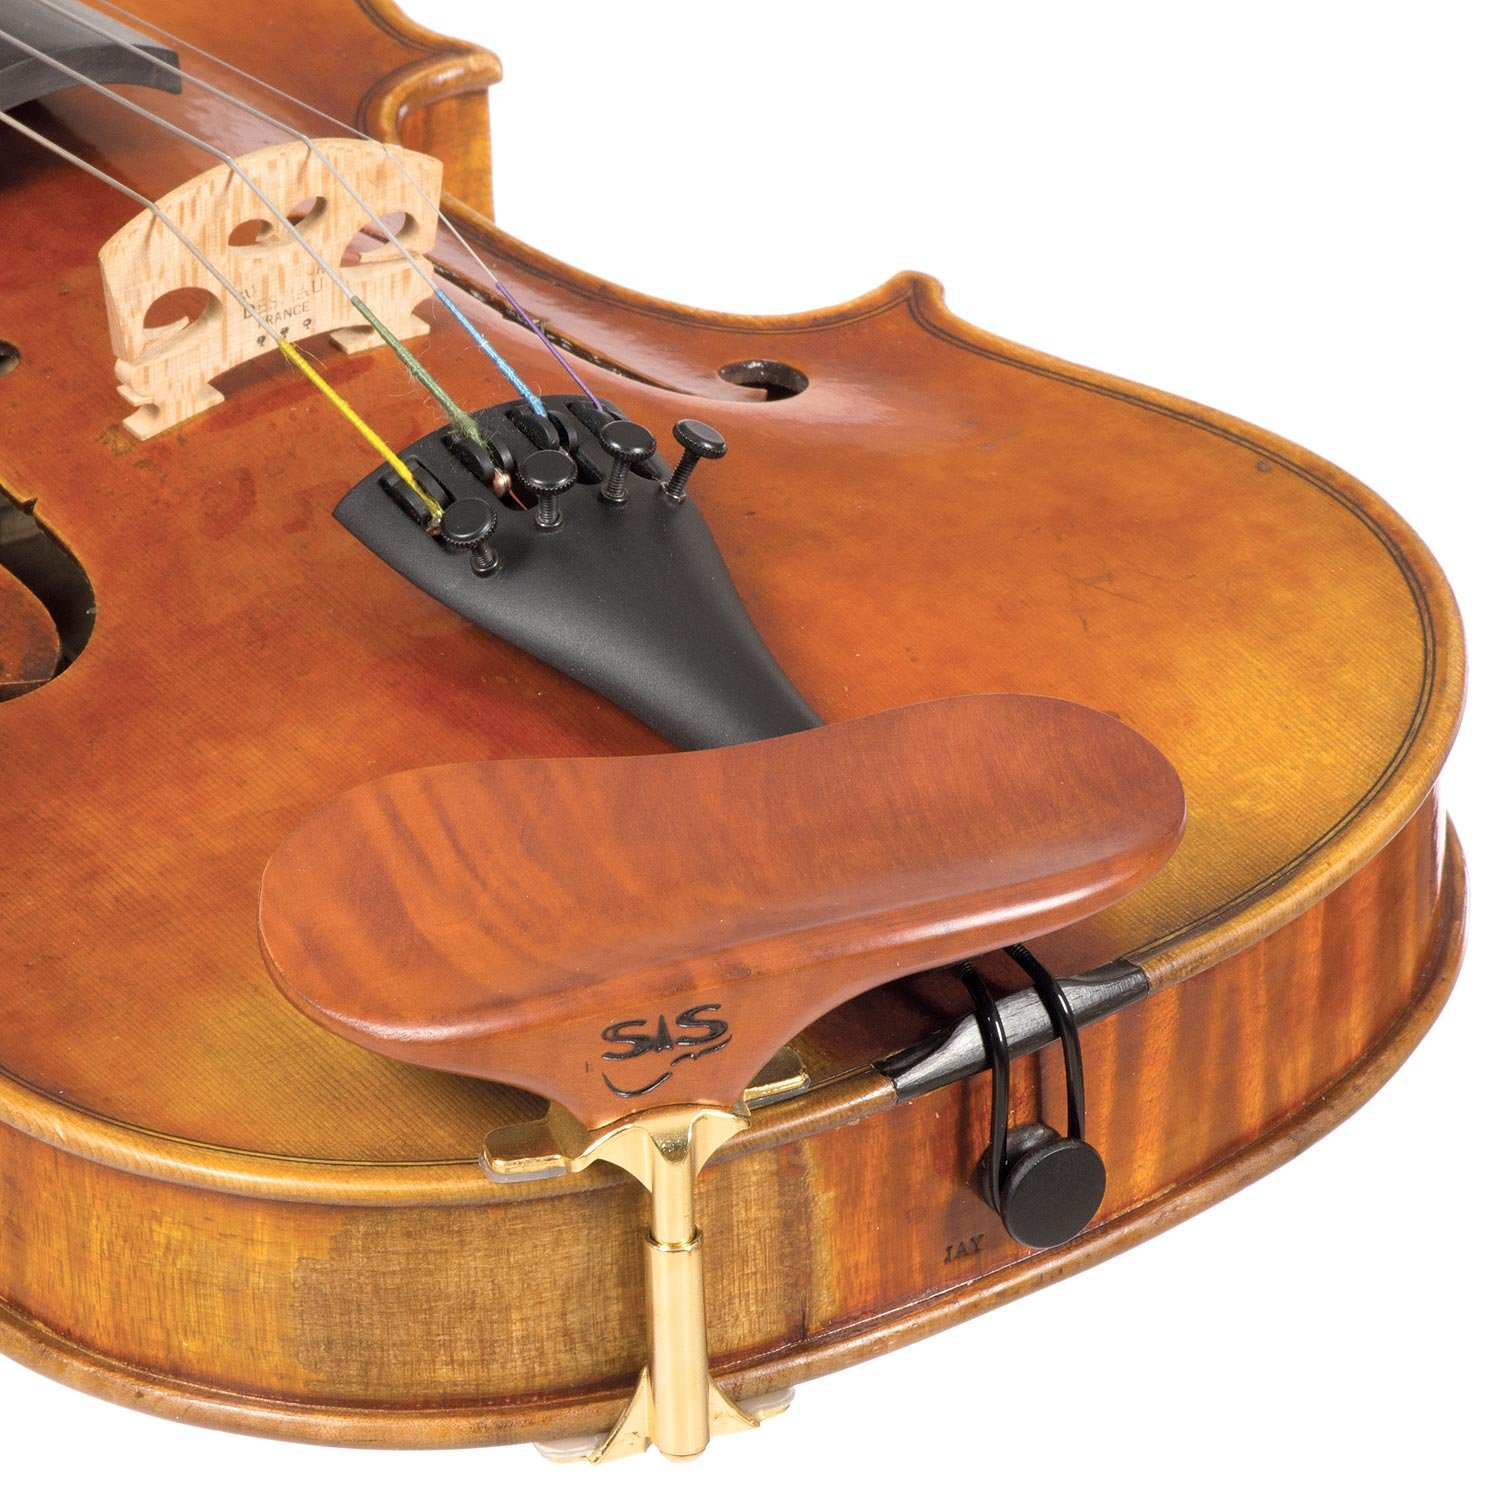 SAS Pearwood Chinrest for 3/4-4/4 Violin or Viola with 24mm Plate Height and Goldplated Bracket BHBU0503A534